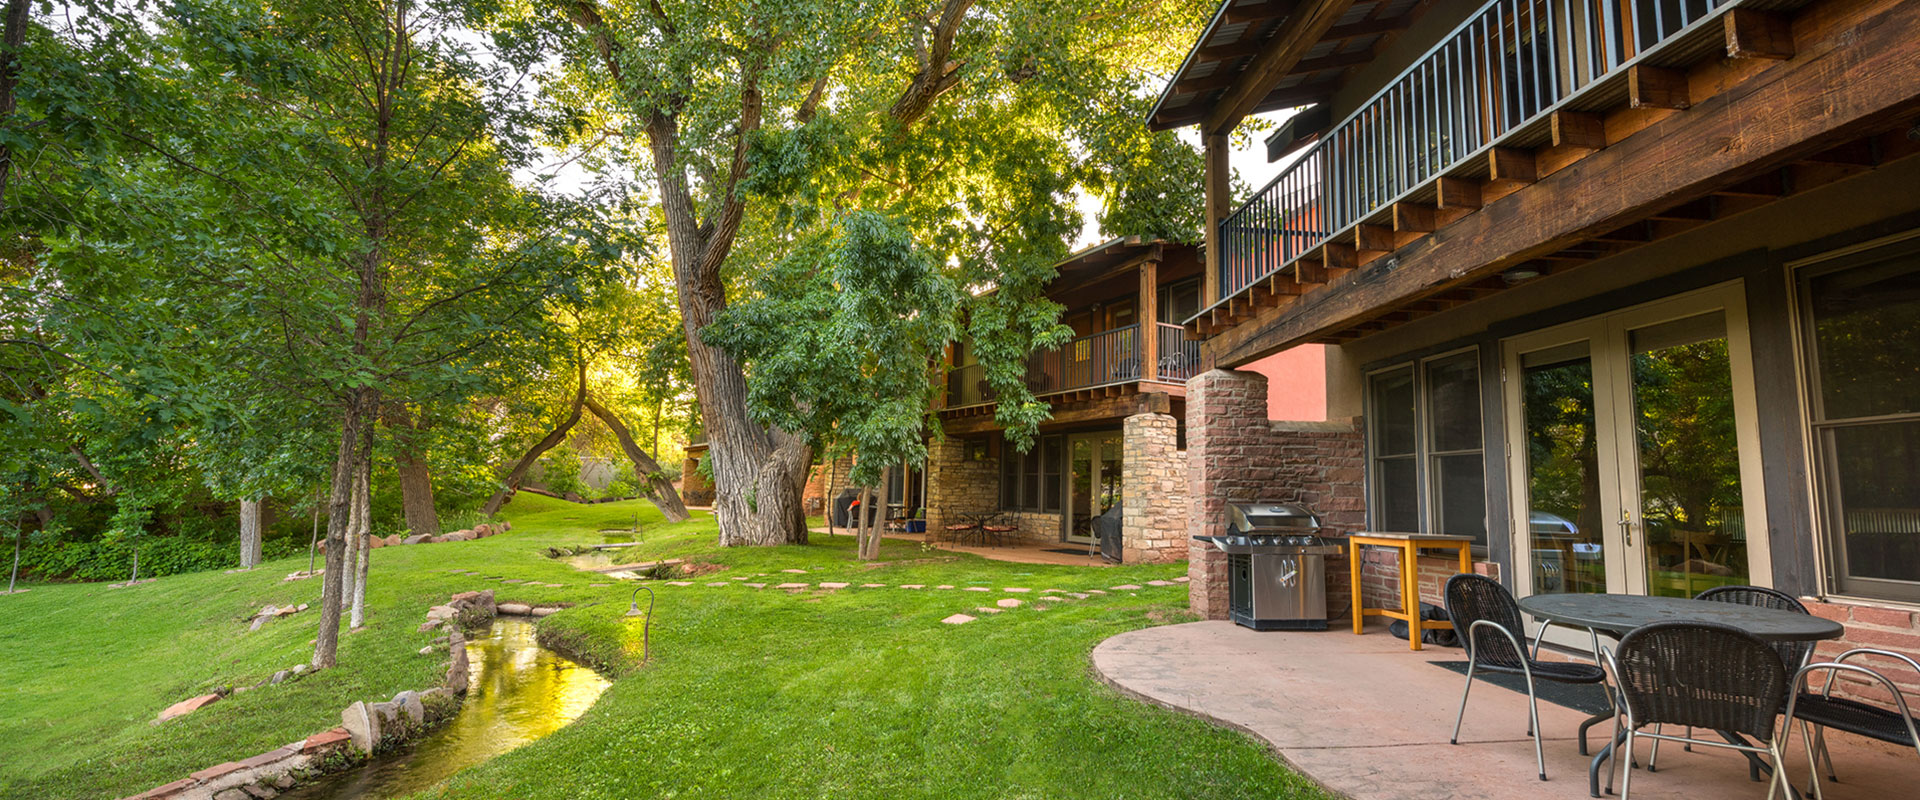 A large aerial view over the sandstone cliffs, the cottonwood tree tops and the sloping white and brown roofs of bungalows and townhomes at Moab Springs Ranch.